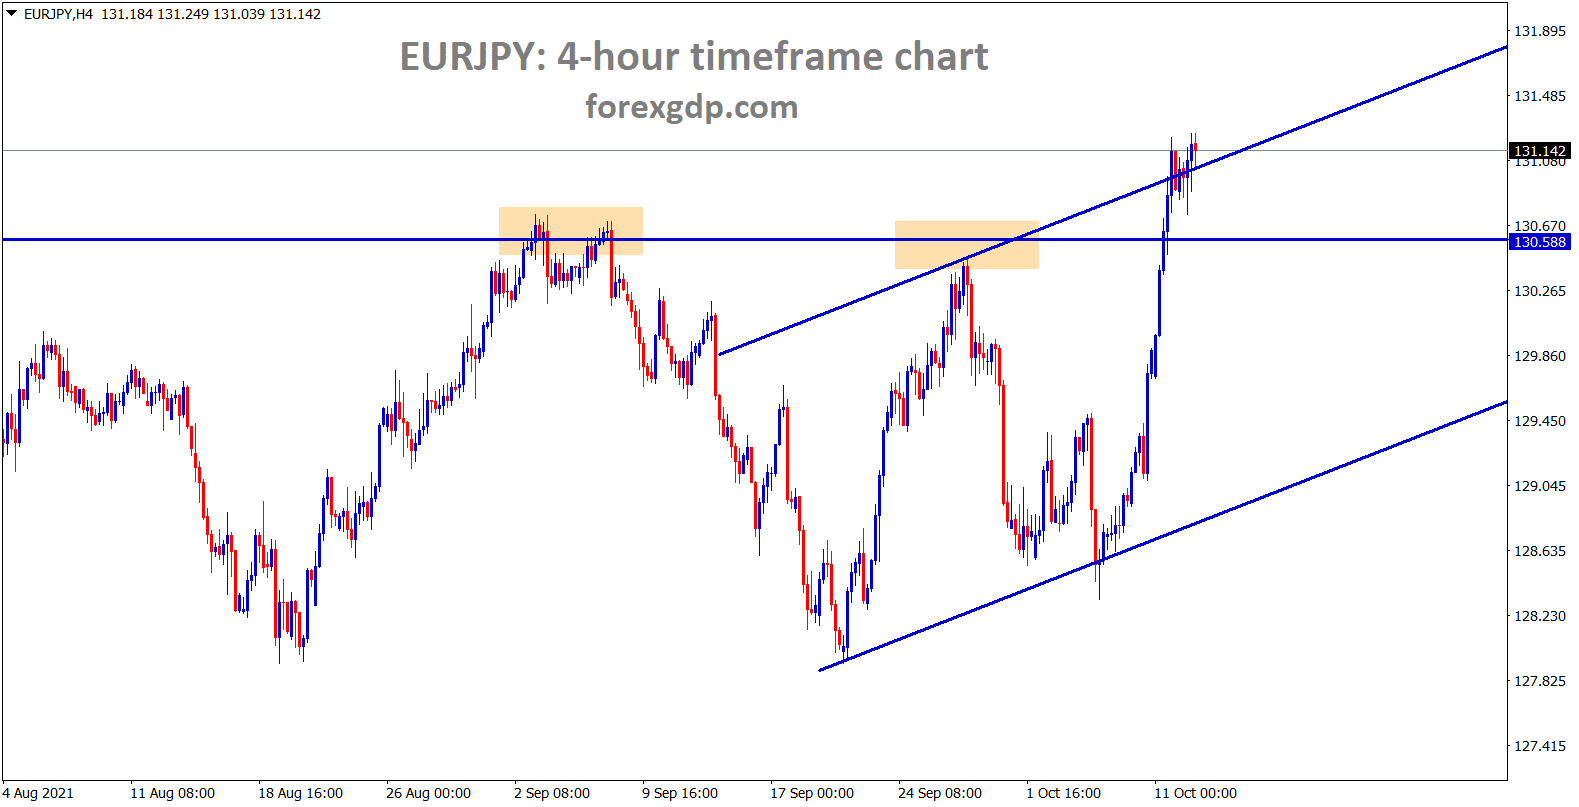 EURJPY is moving up continuously breaking the highs with buyers pressure